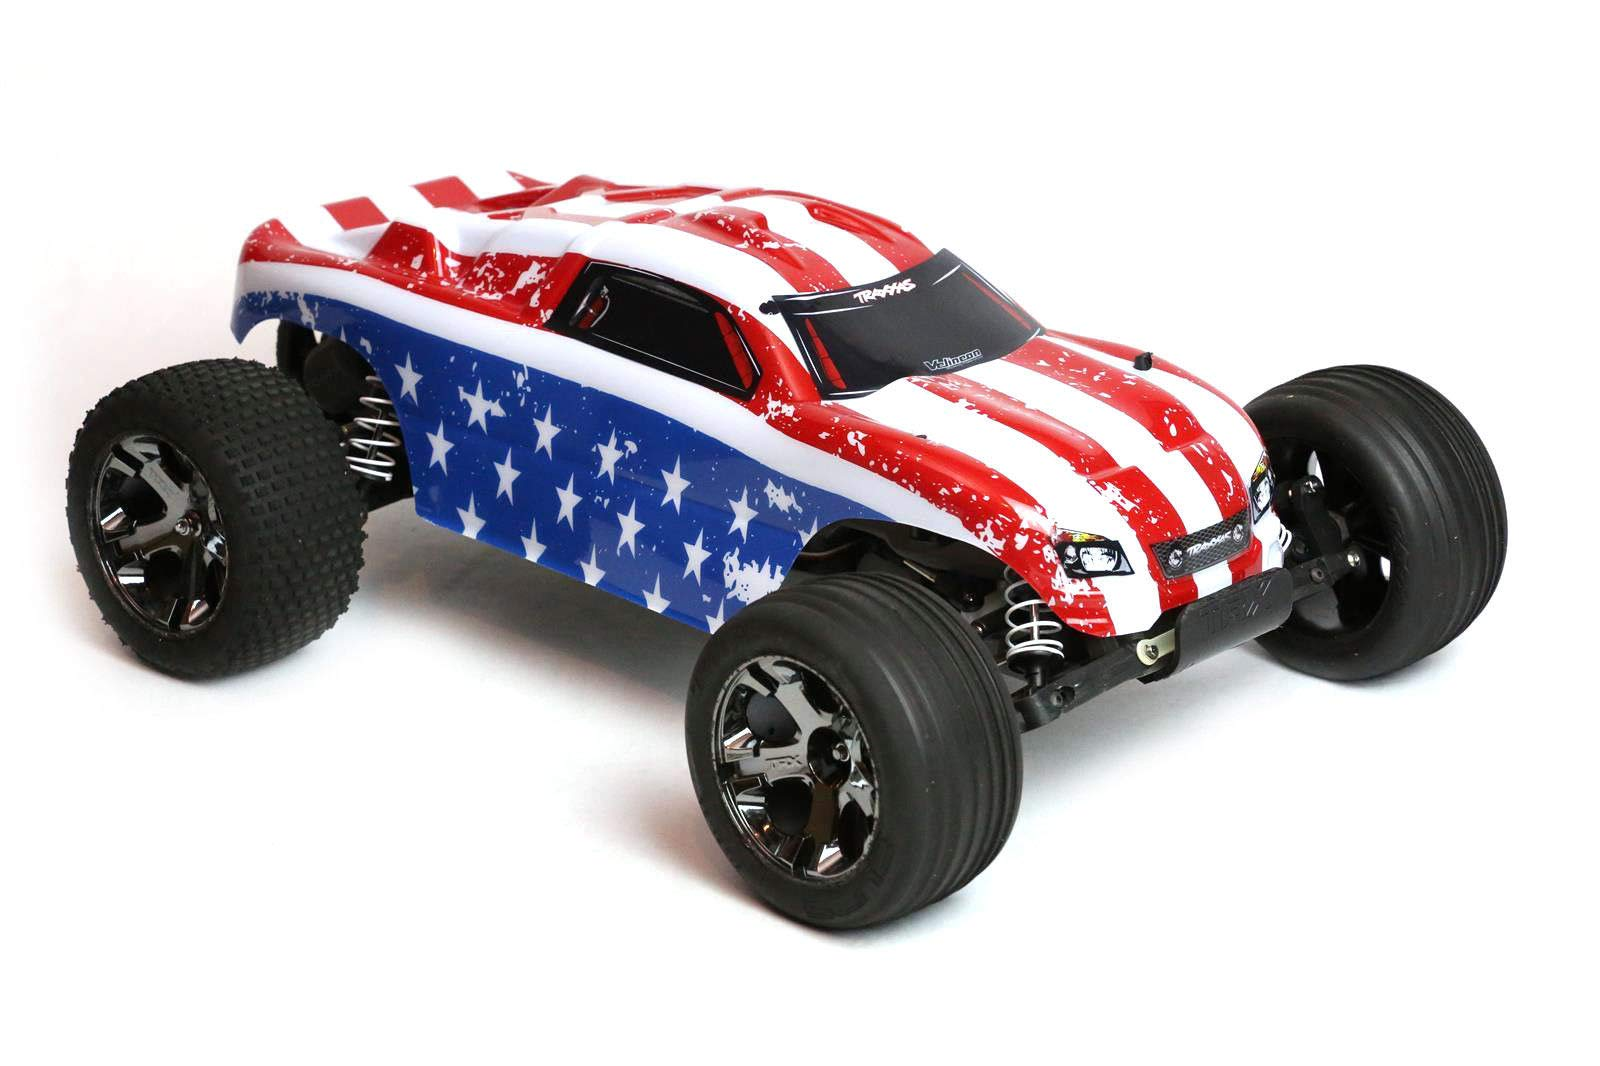 SummitLink Compatible Custom Body Flag Strip Style Replacement for 1/10 Scale RC Car or Truck (Truck not Included) R-ST-01